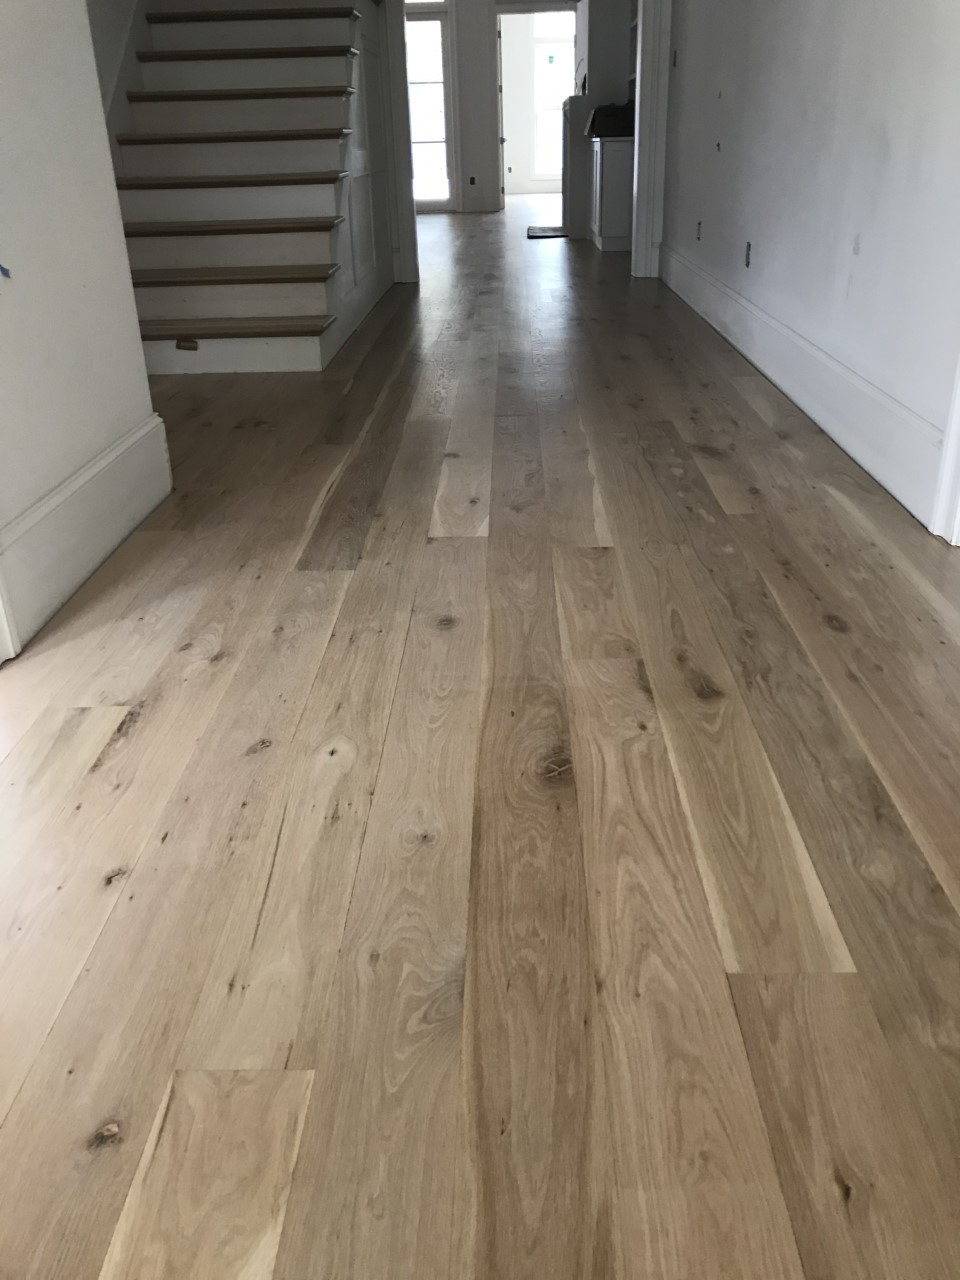 This is a photo of white oak flooring with a satin finish. It has a weather washed appearance.